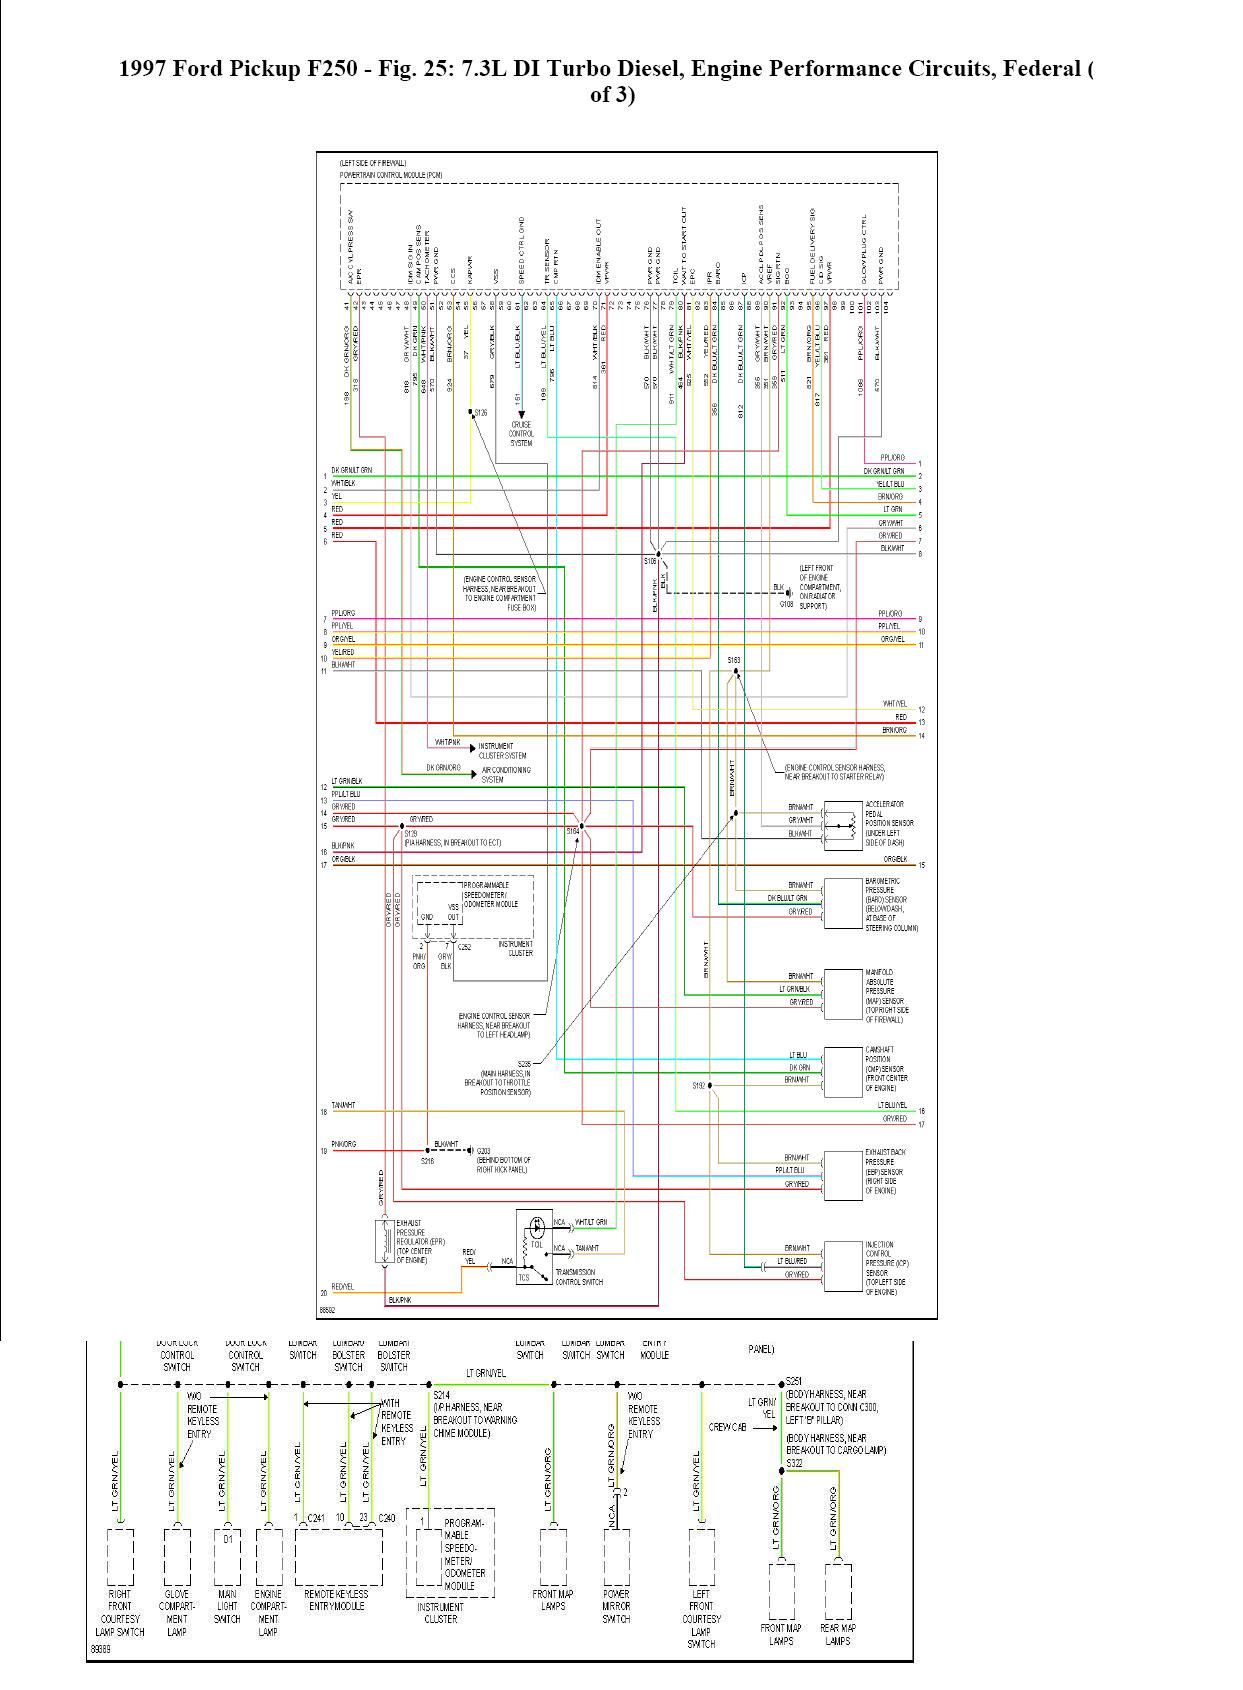 Where Can I Find A Complete Wiring Schematic For A 1997 Ford F350 - 7.3 Powerstroke Wiring Diagram